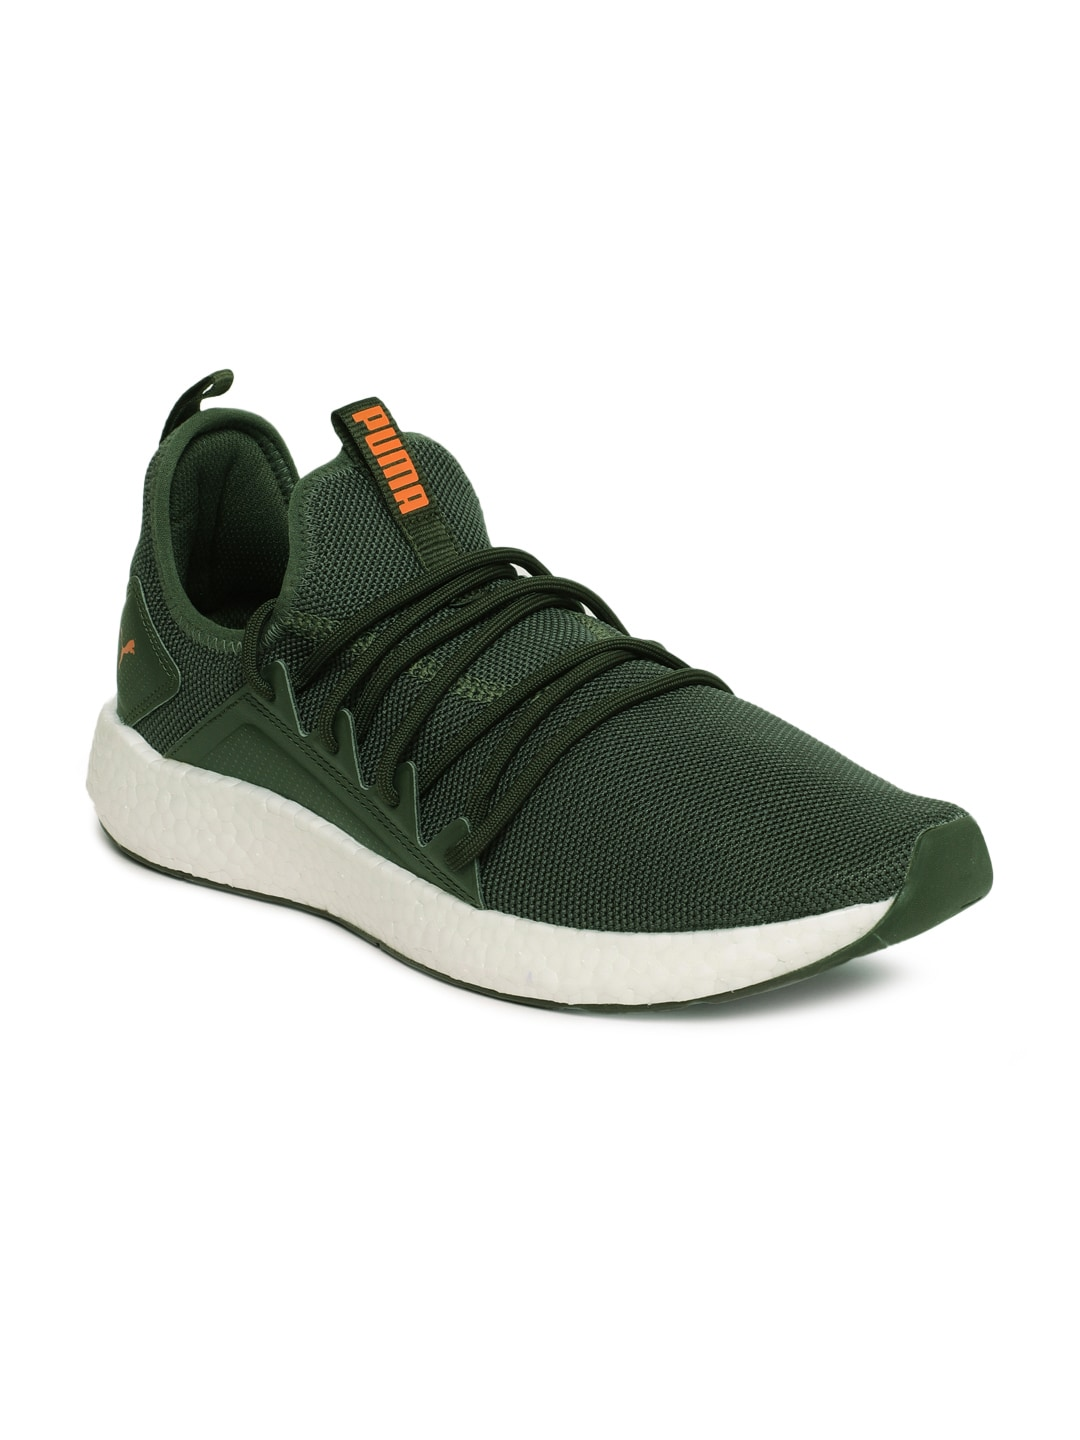 f3c8b43c628ce3 Puma Only Sports Shoes - Buy Puma Only Sports Shoes online in India